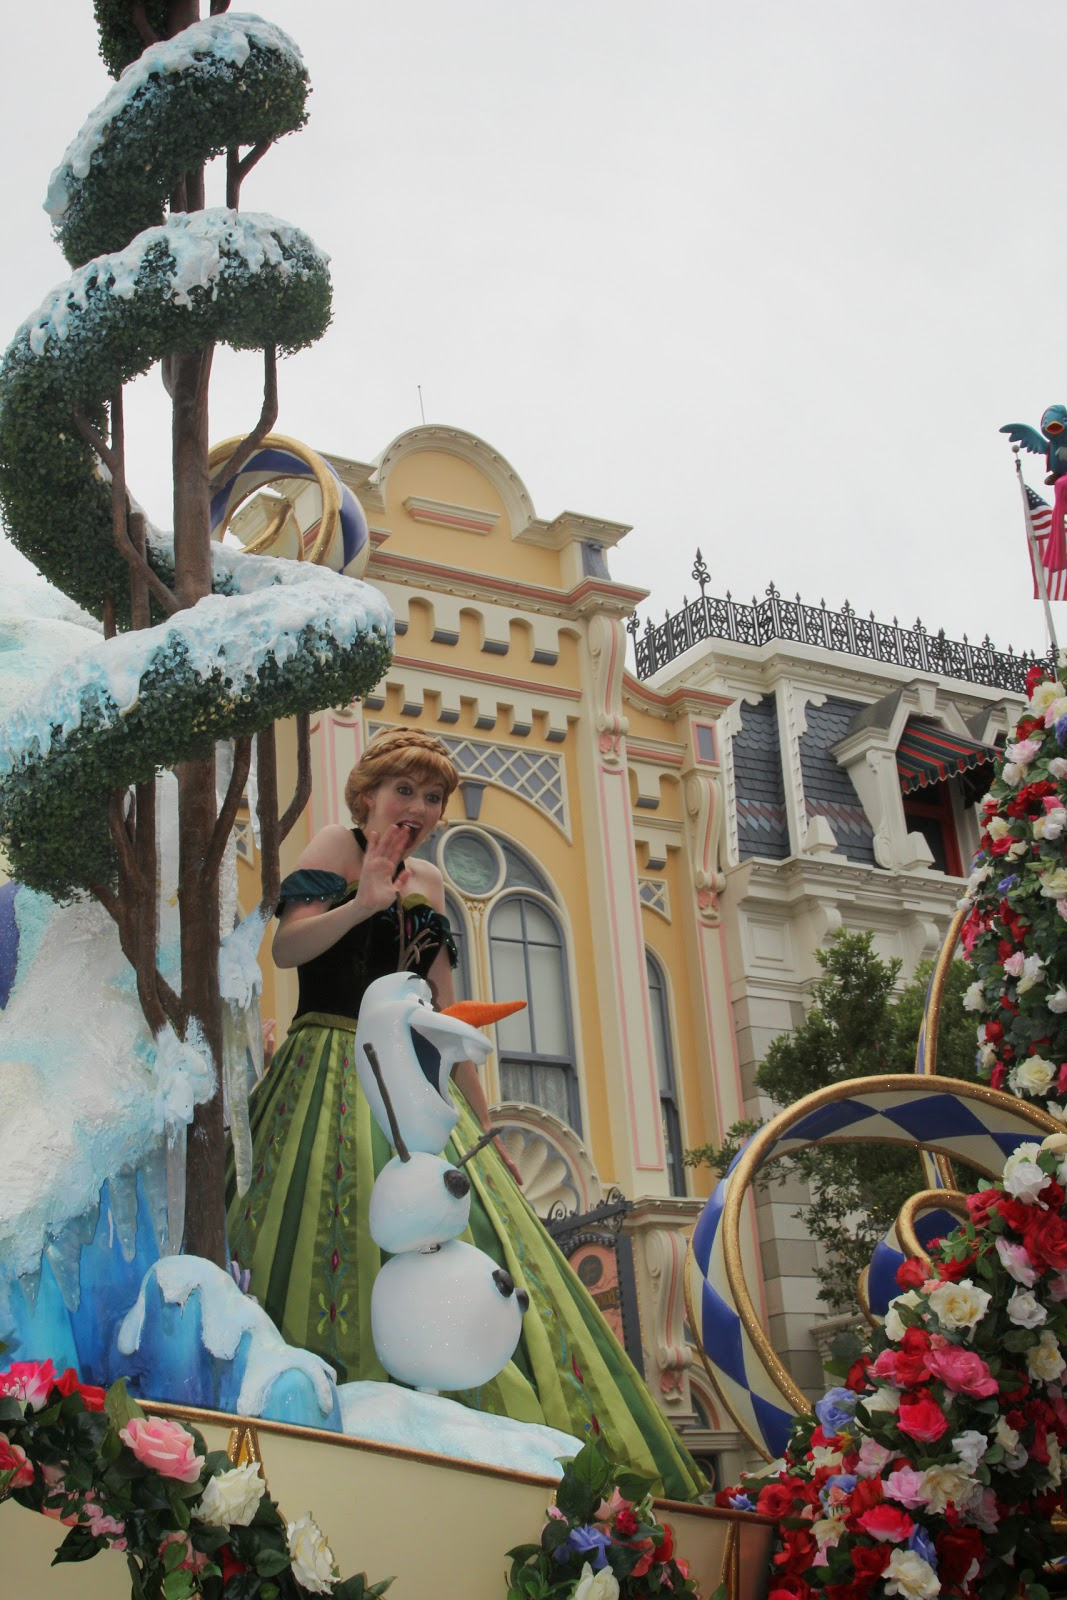 Princess Anna and Olaf